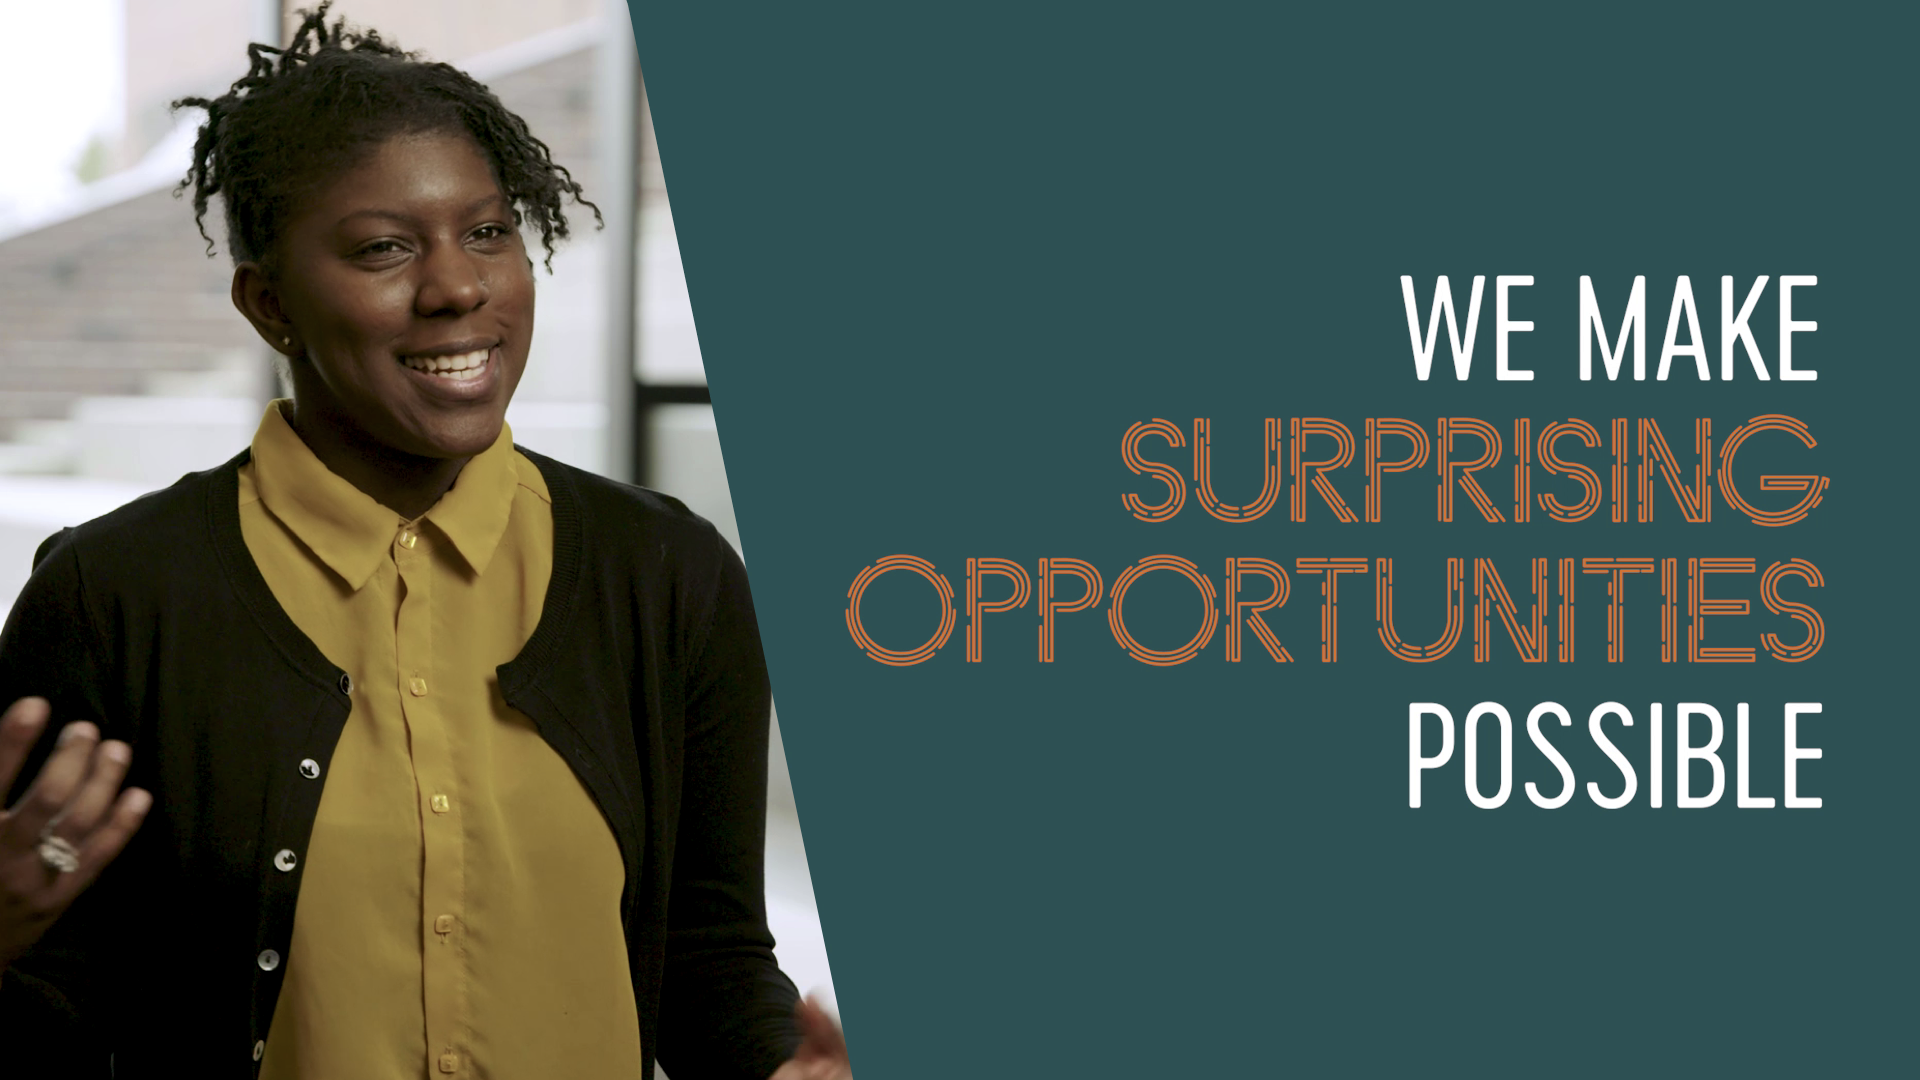 We Make Surprising Opportunities Possible